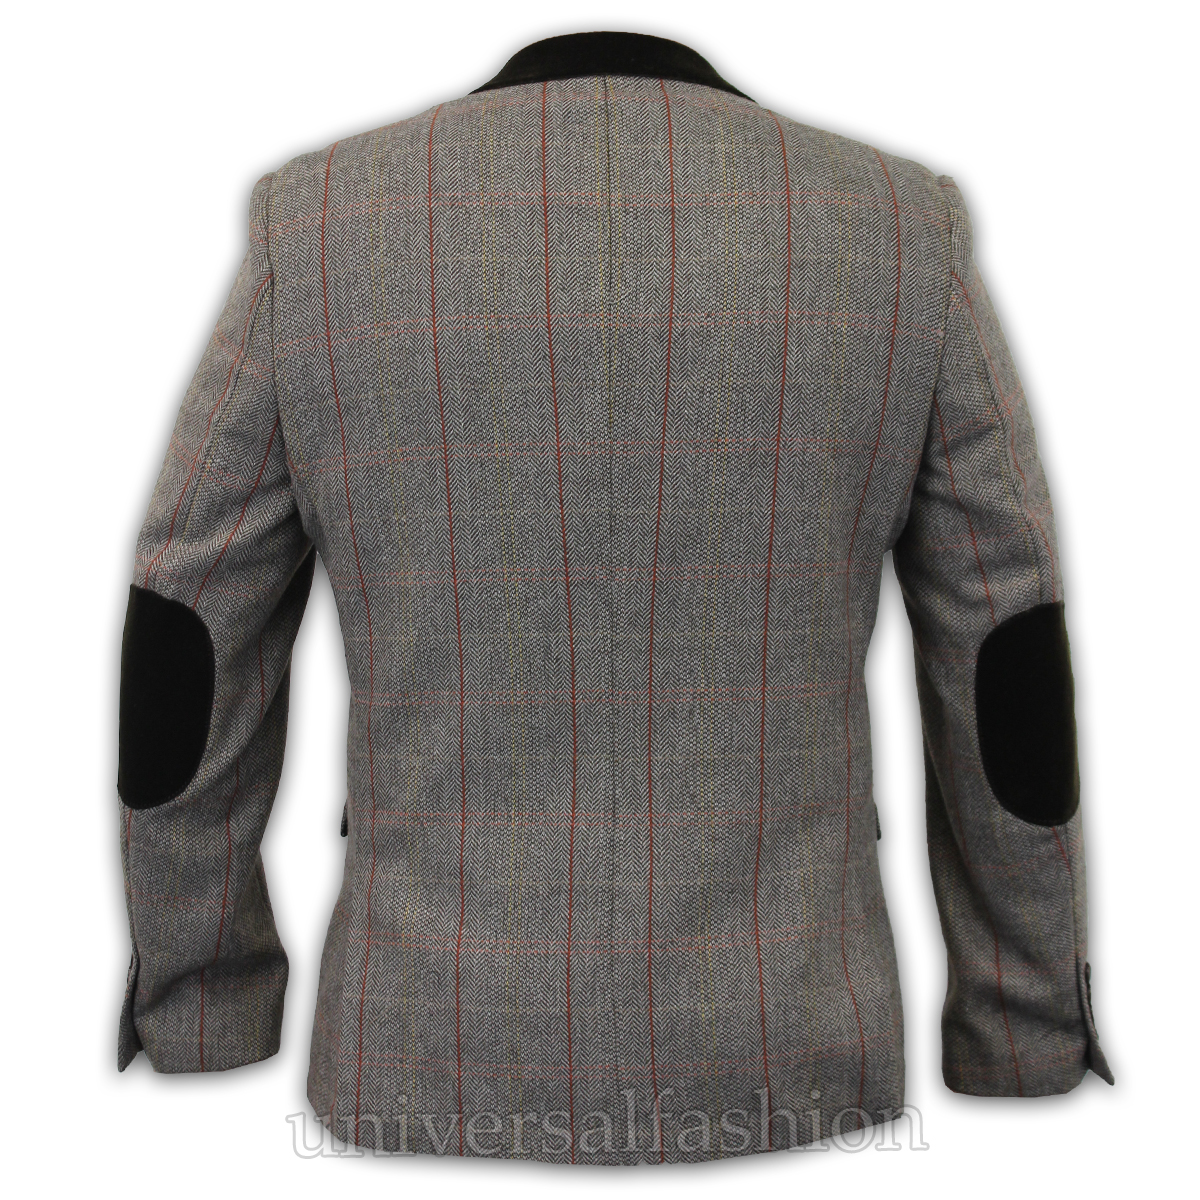 Mens-Blazer-Marc-Darcy-Wool-Look-Coat-Formal-Dinner-Check-Jacket-Patch-Lined-New thumbnail 3